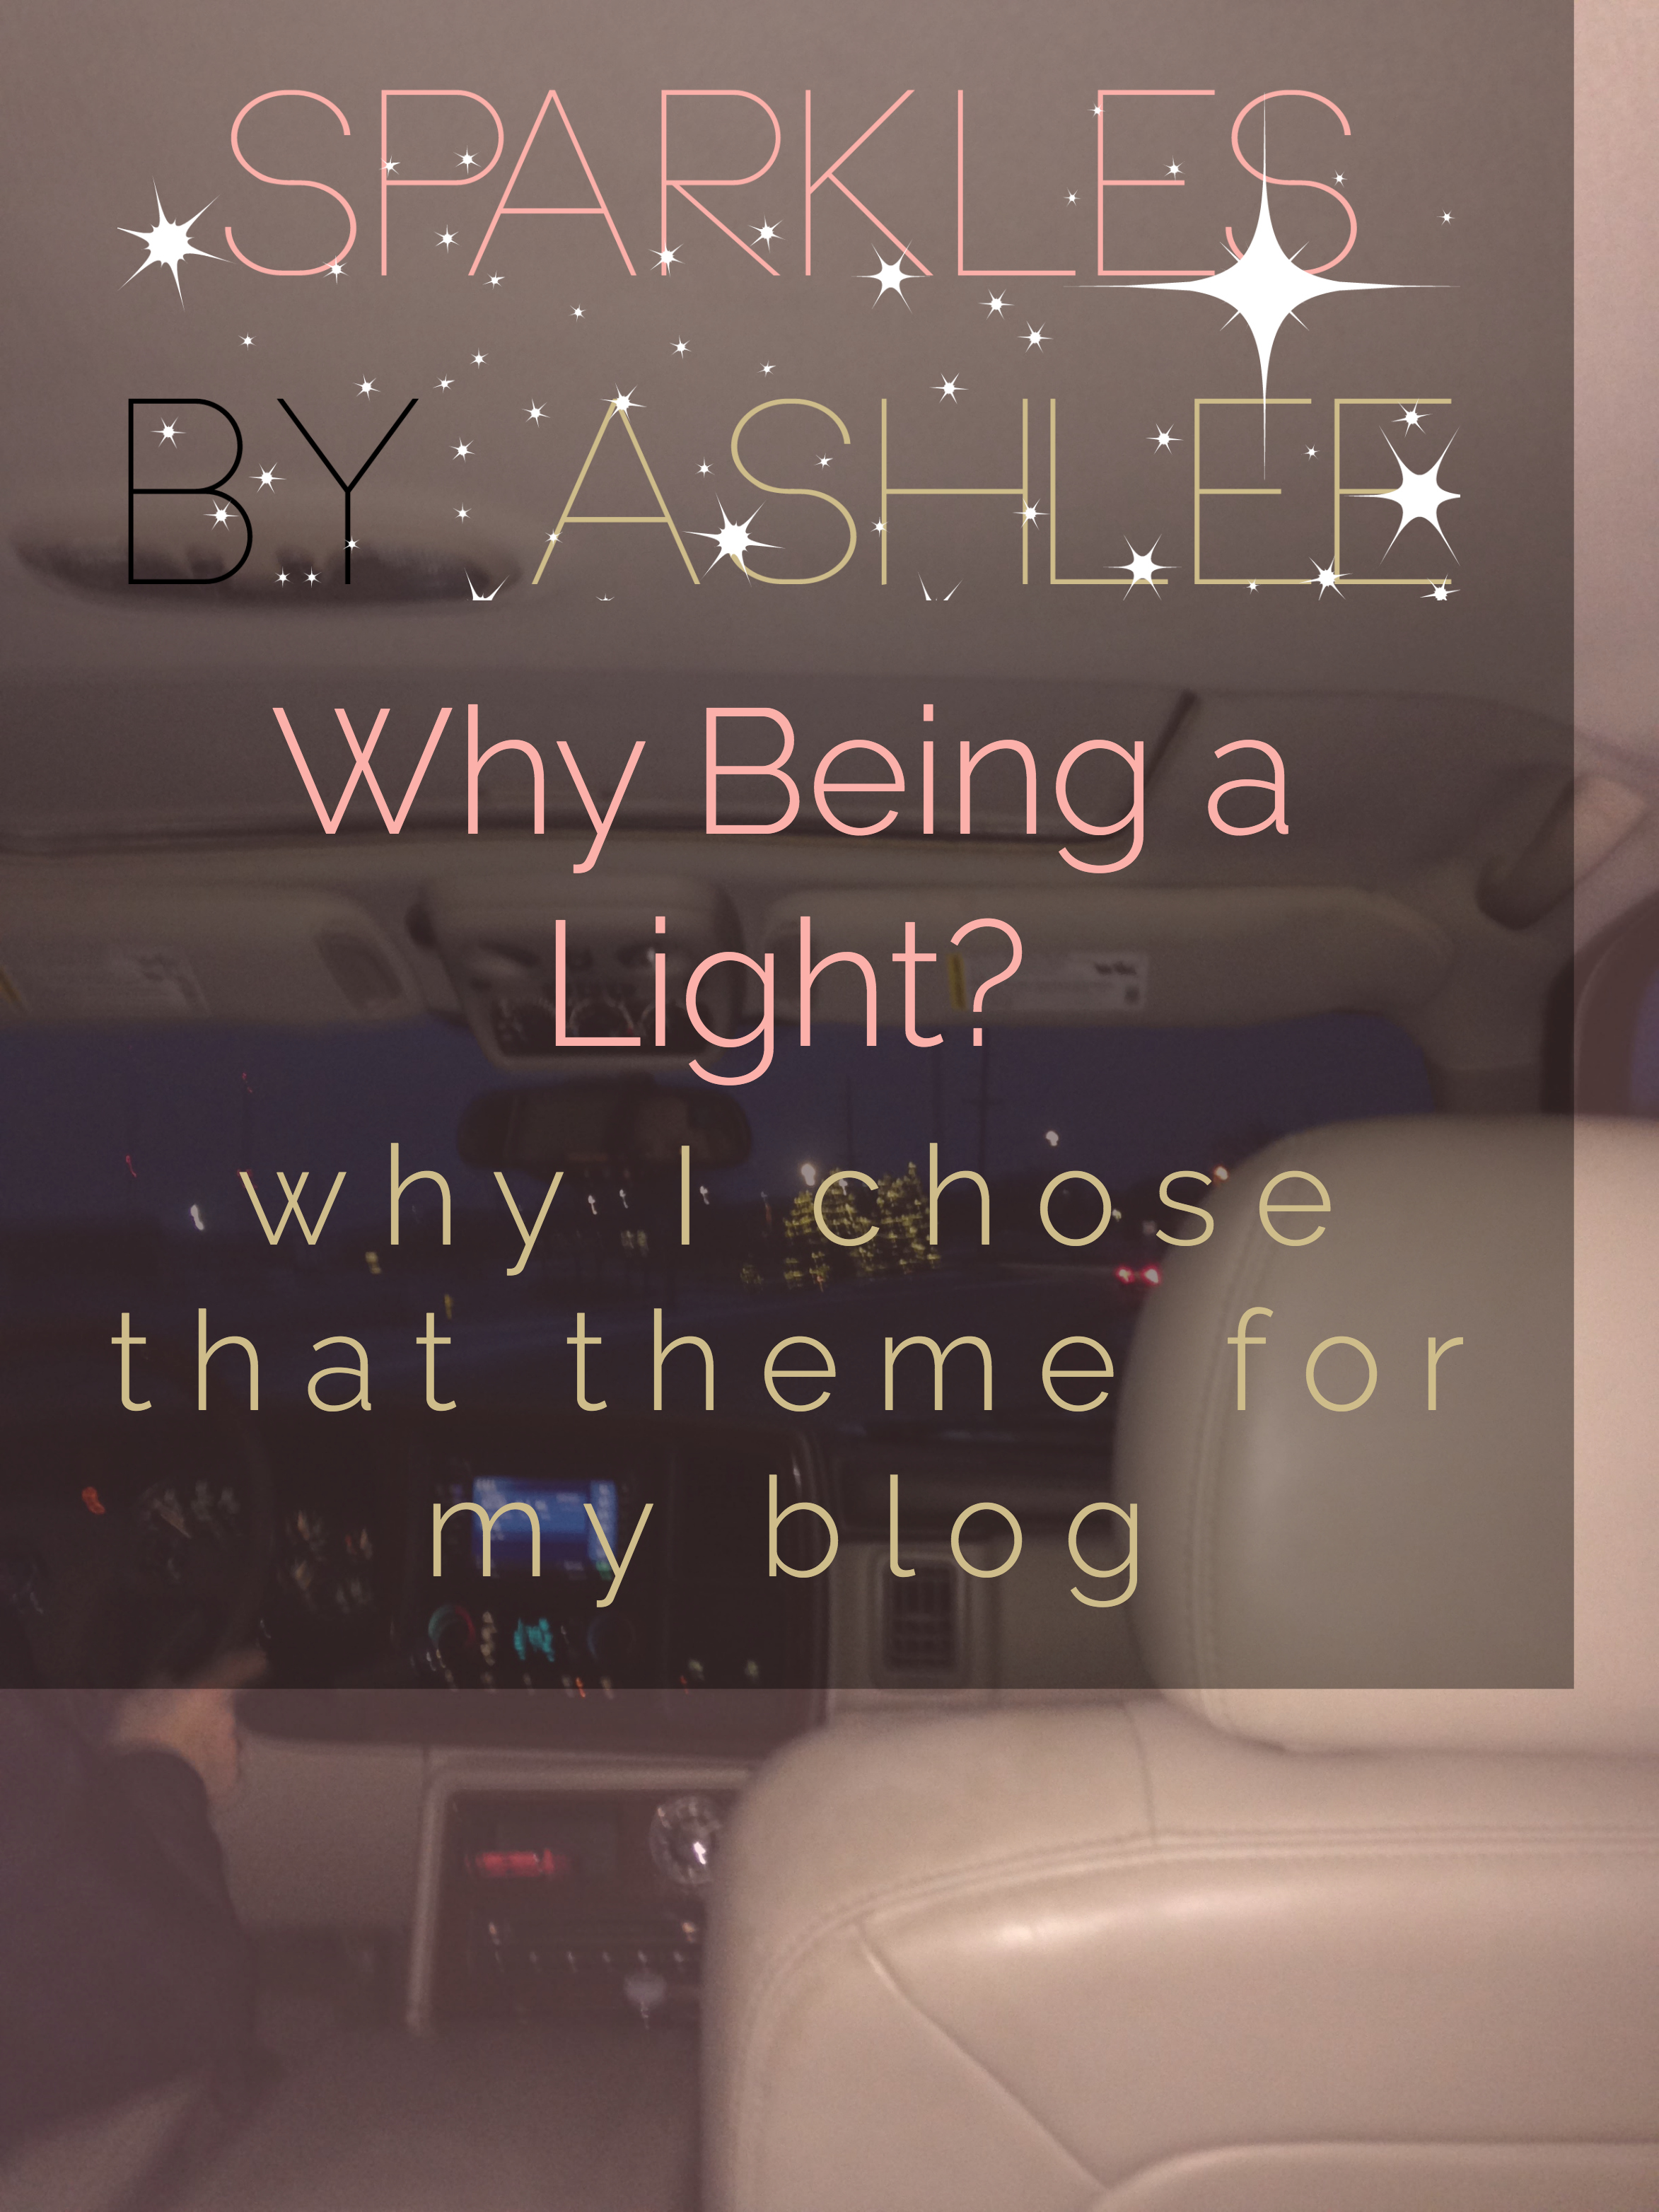 Why-Being-a-Light-Sparkles-by-Ashlee.jpg